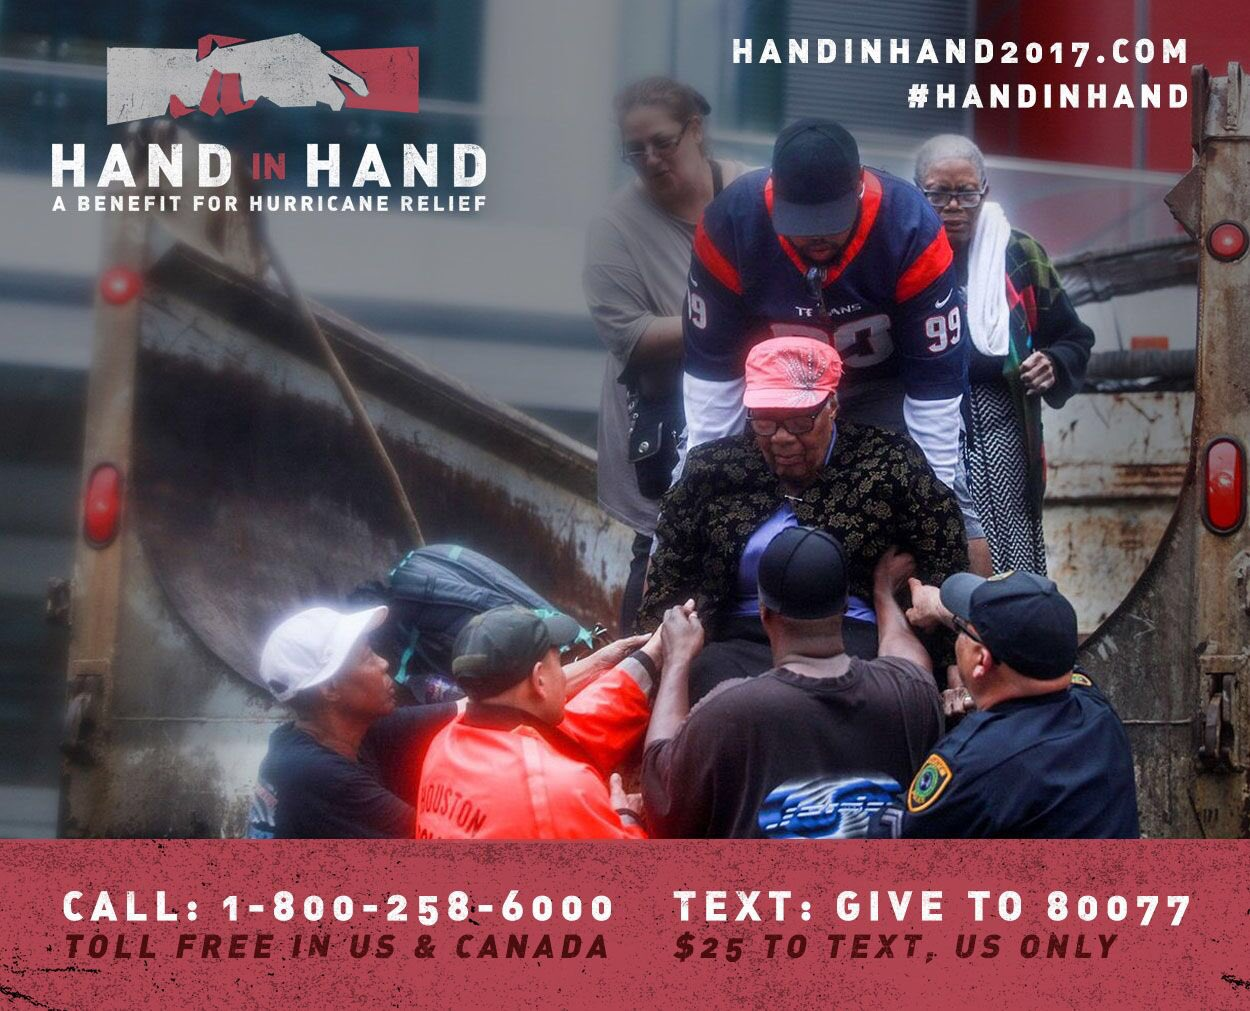 Phone lines are open. Call 1 800 258 6000 to donate by credit card. Let's do this fam. #HandInHand https://t.co/3H88RyDYd5